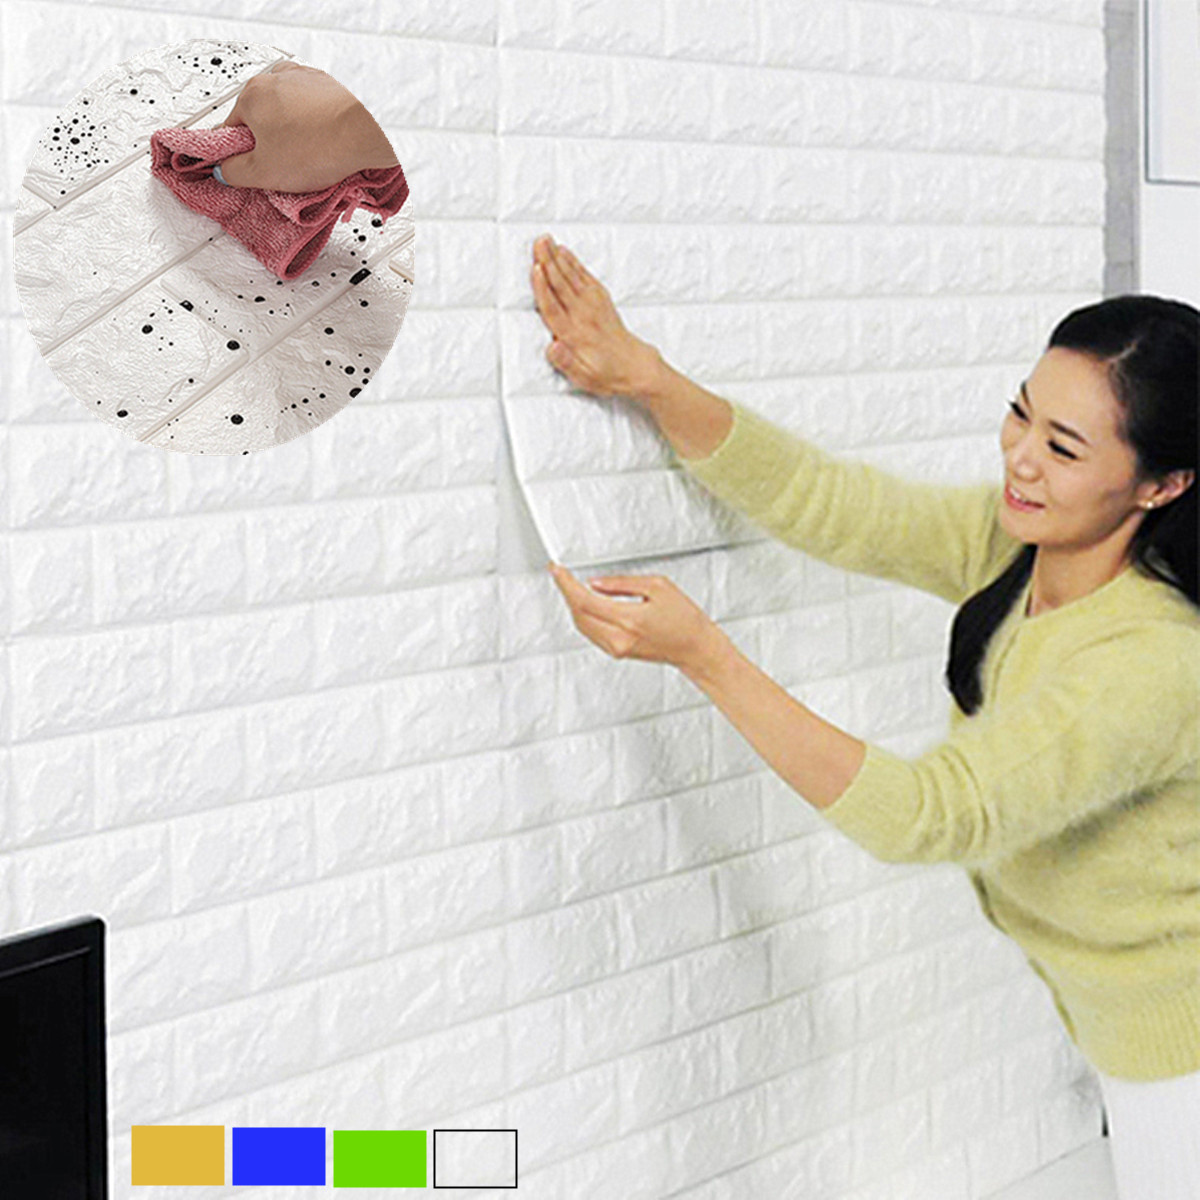 6 Sq.Ft Peal and Stick PE Foam Waterproof 3D Wallpaper DIY Wall Stickers Embossed Brick bedroom decor Stone Wall Decor 23.6×23.6 inch Room Children Bedroom Decor Self-adhesive